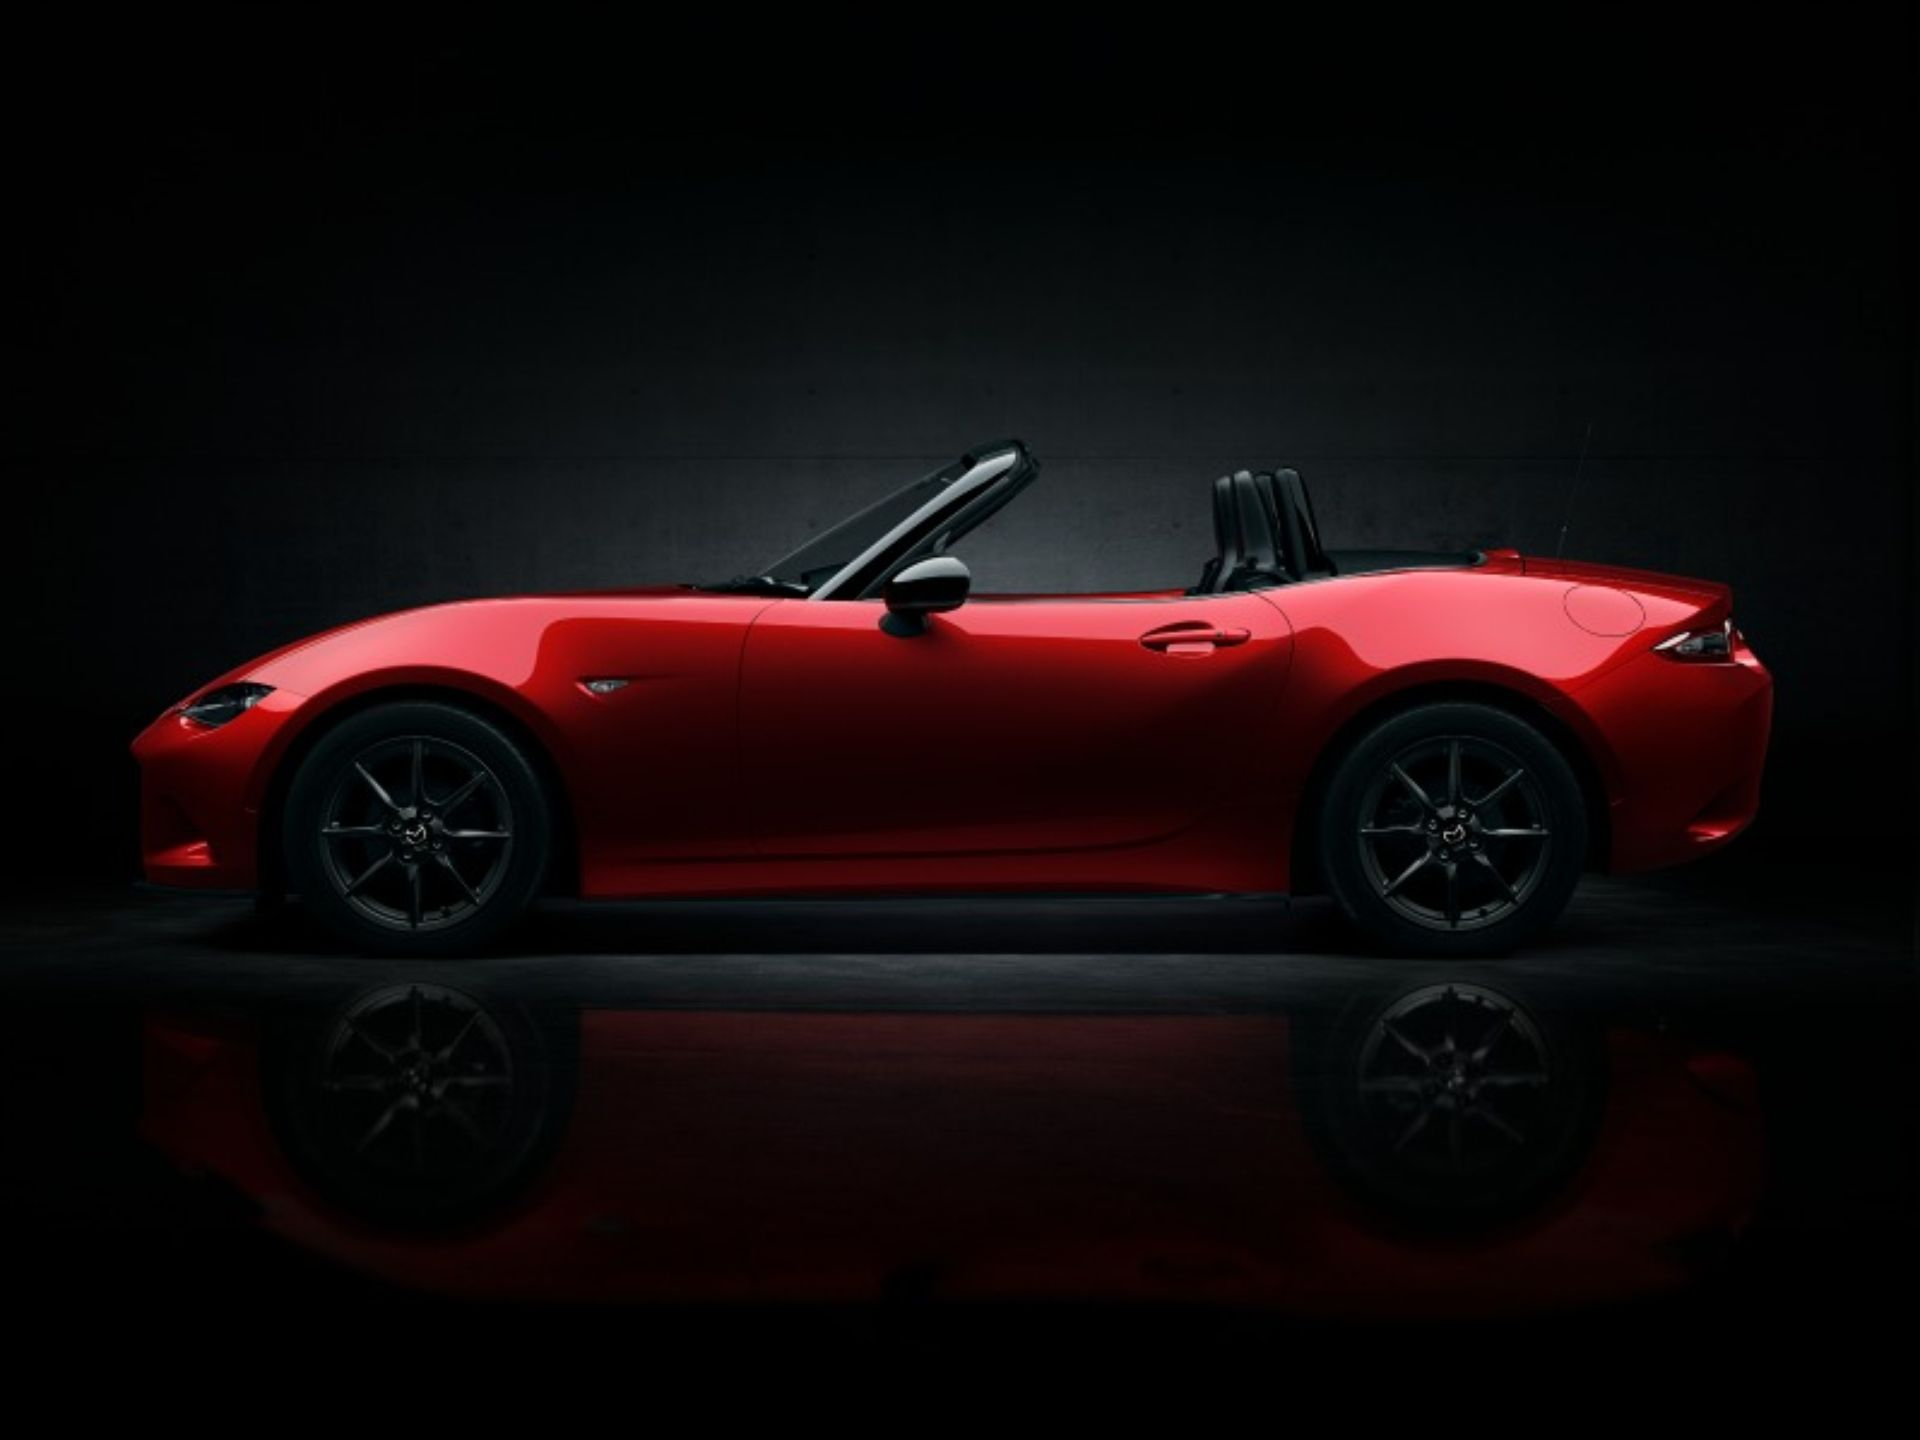 Mazda Unveils the New Miata MX-5 Roadster